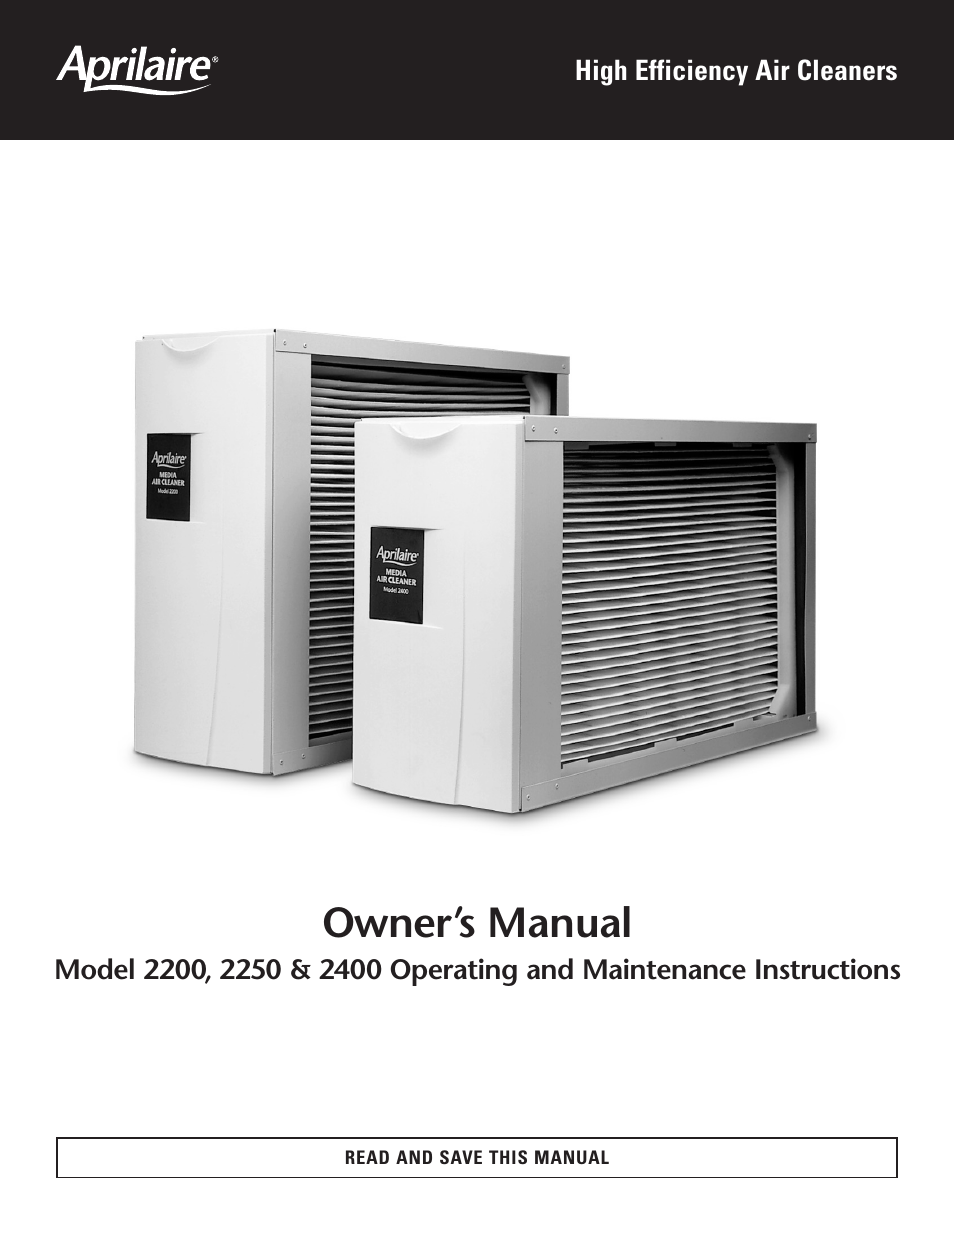 aprilaire 2400 user manual 4 pages also for 2250 rh manualsdir com